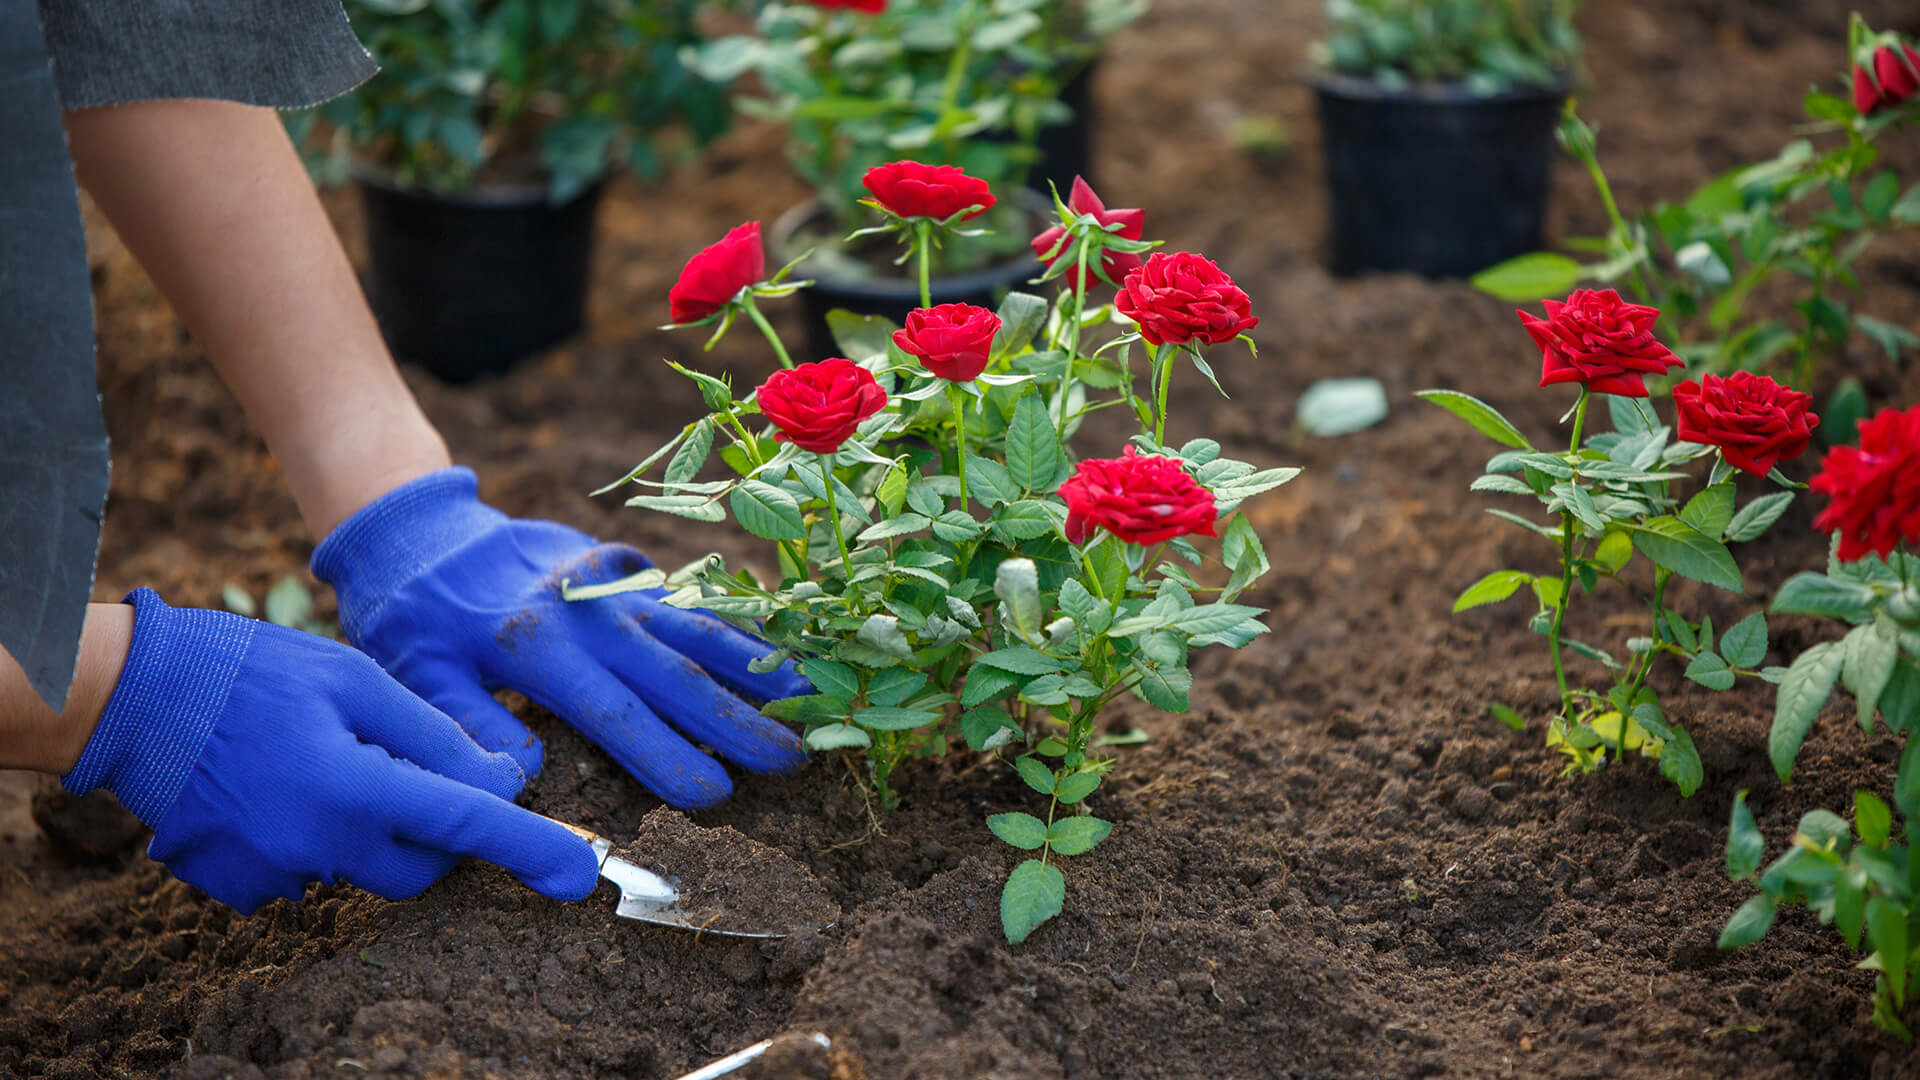 How to plant a rose